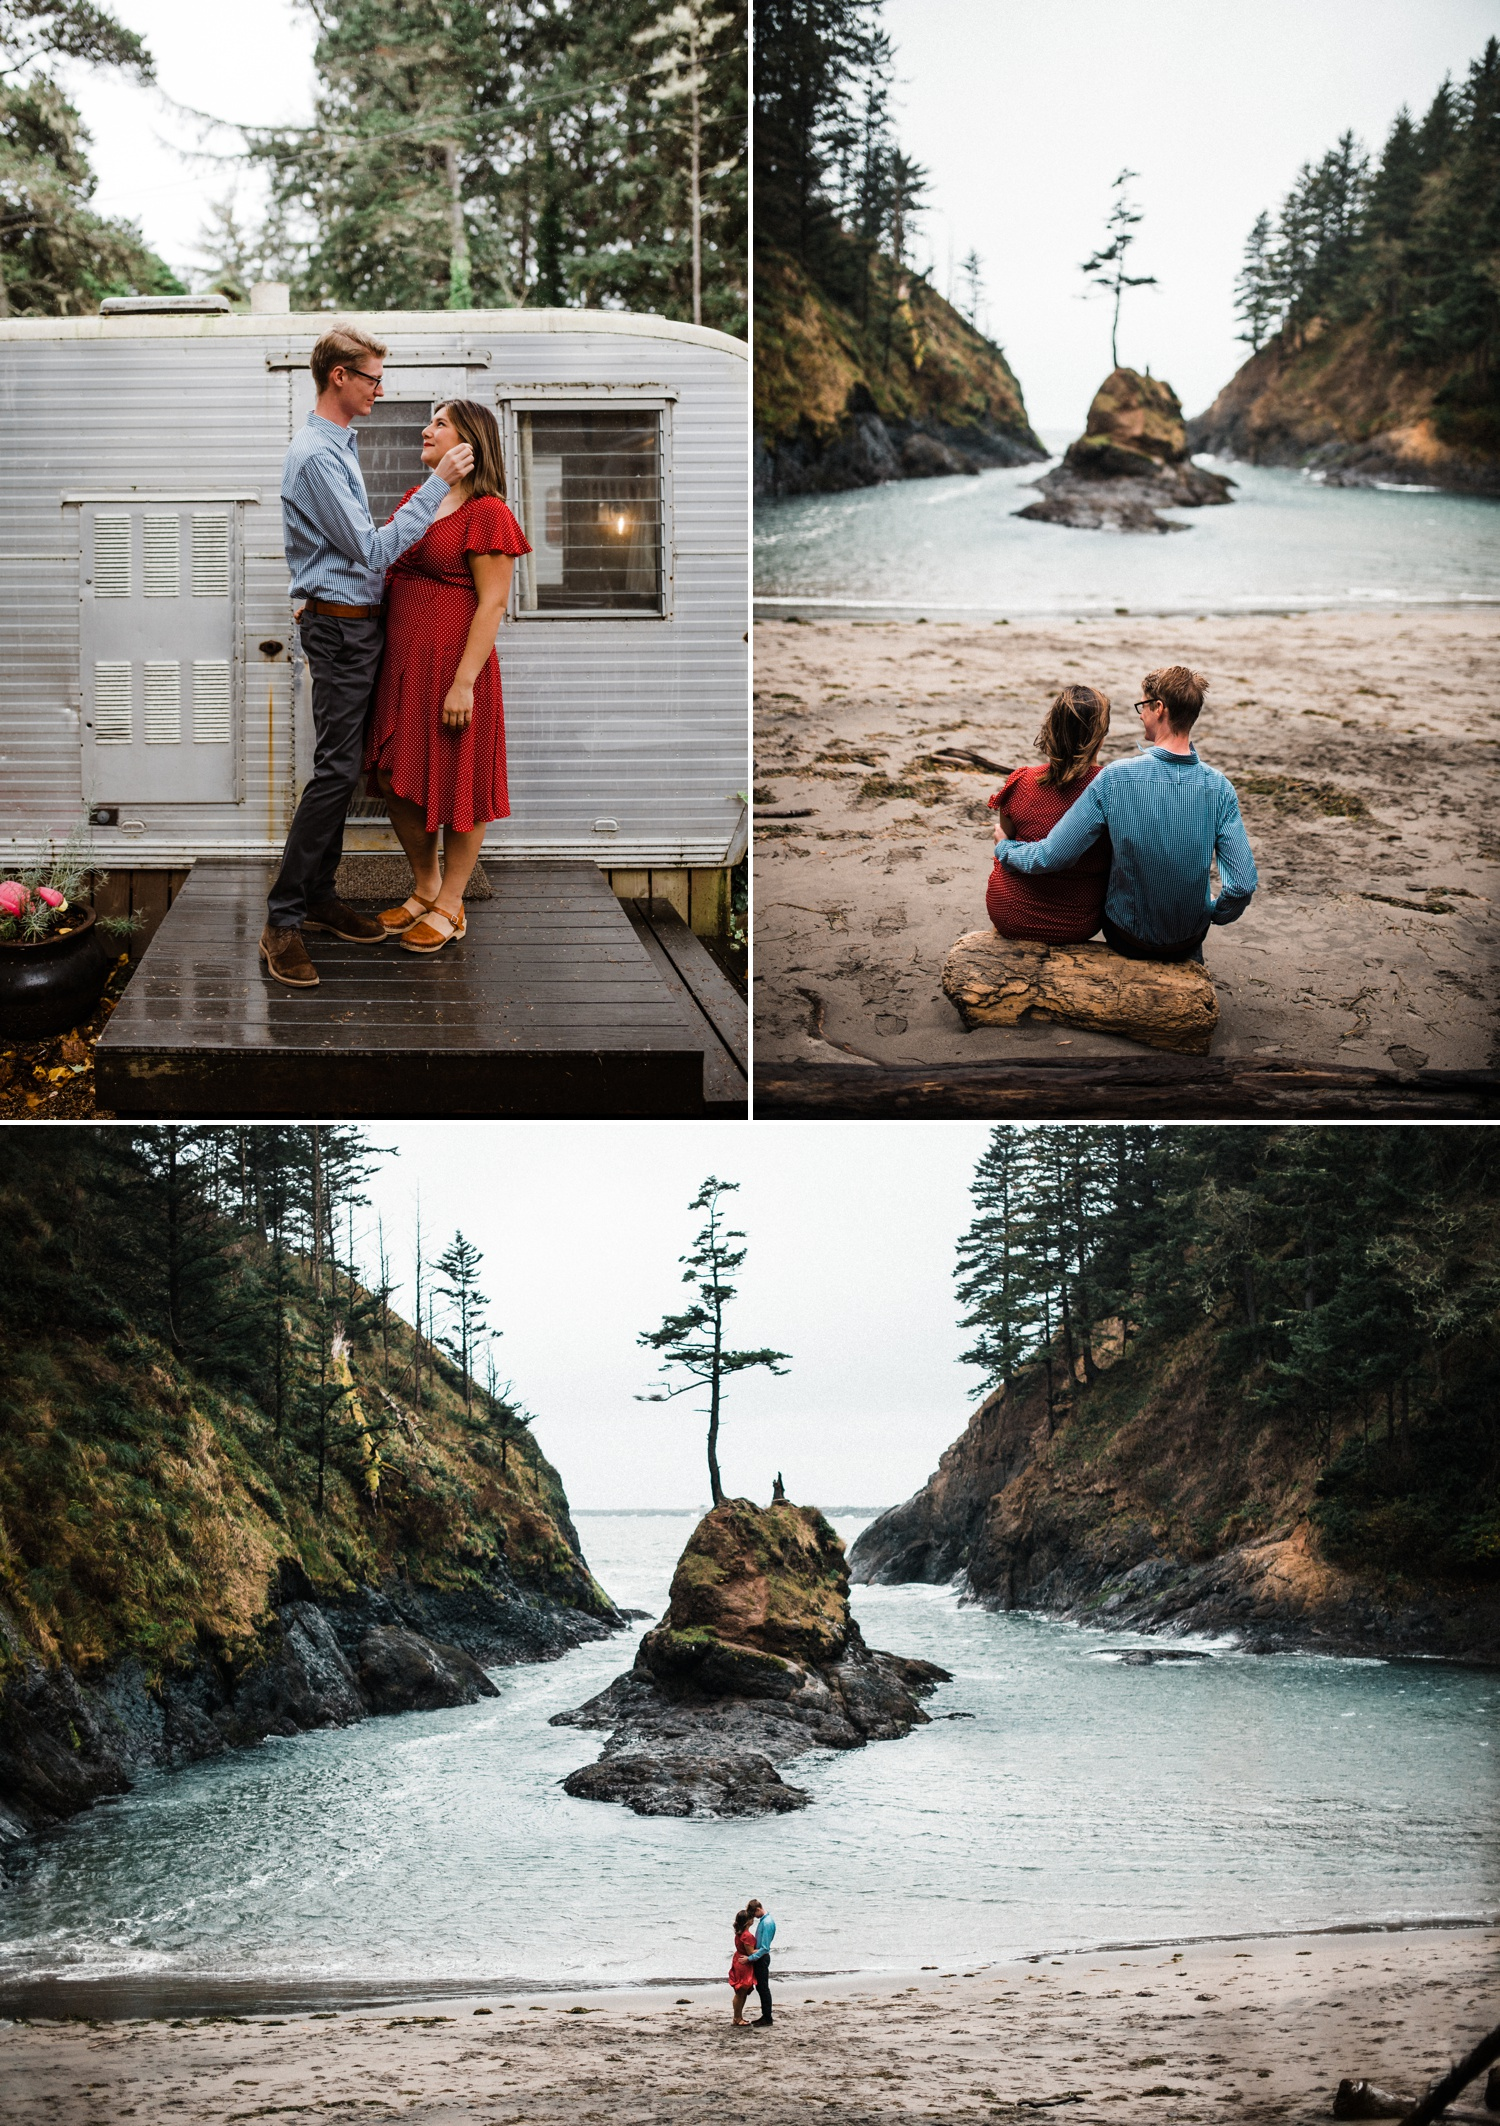 Cape_Disappointment_Engagement_Kailey_Alex_The_Foxes_Photography_028.jpg